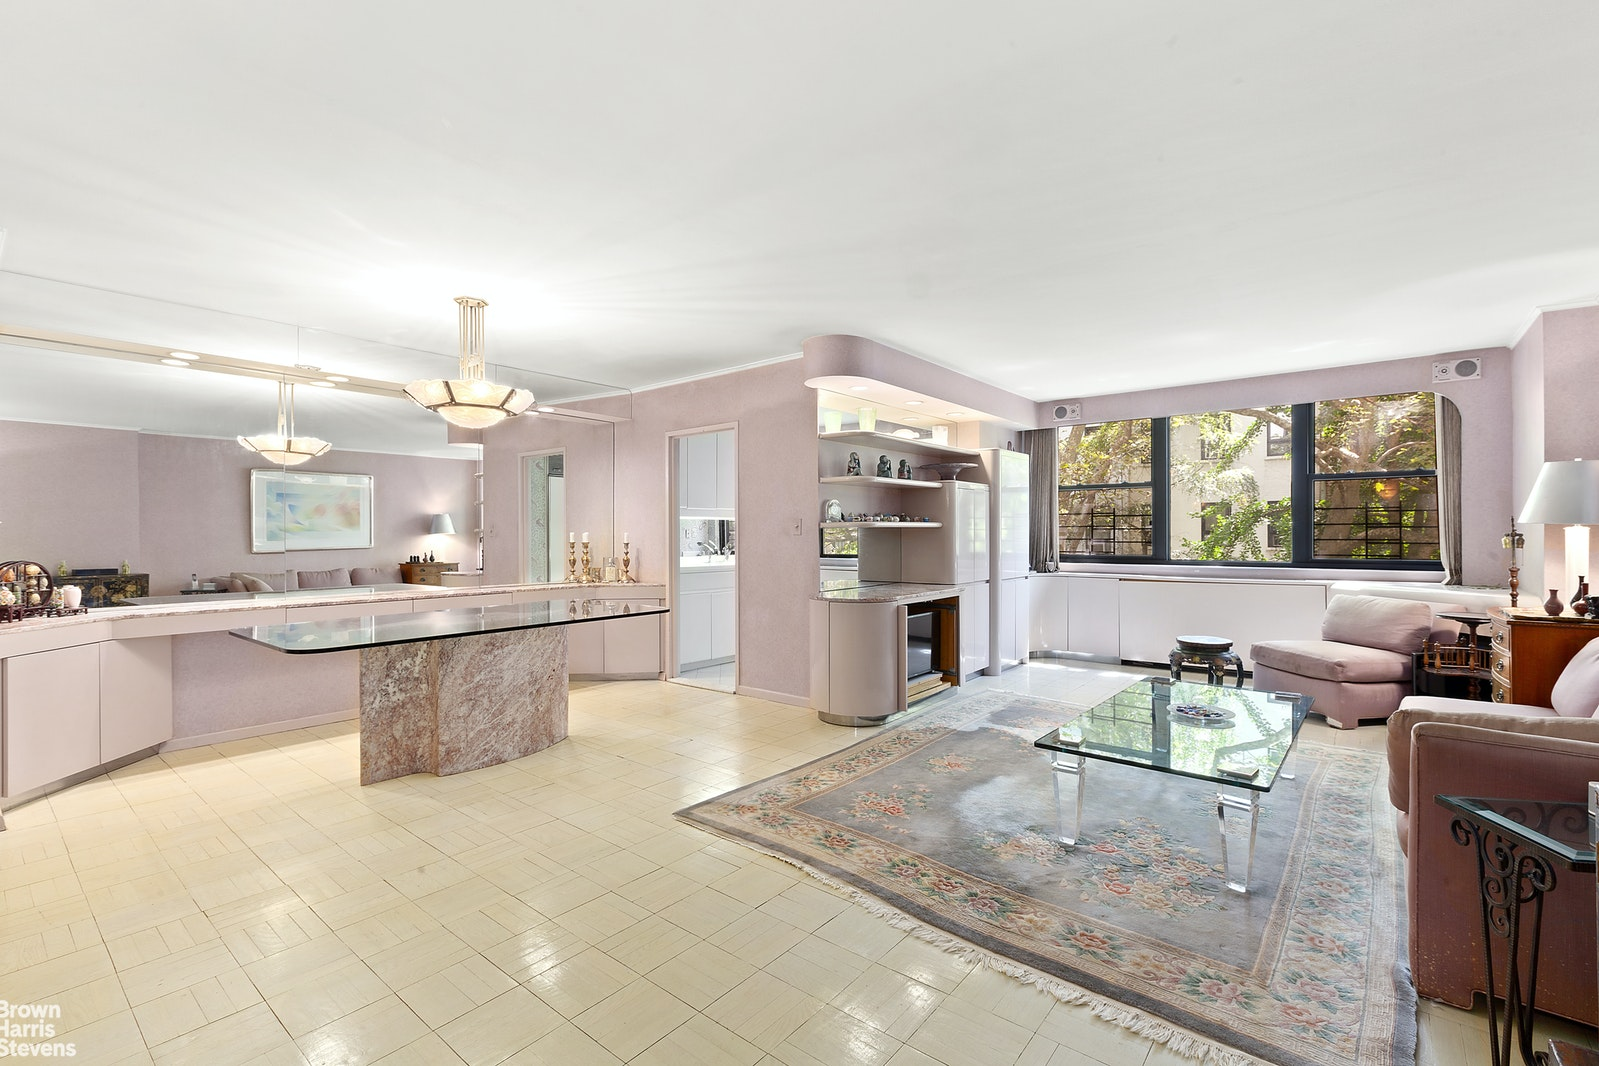 Apartment for sale at 420 East 51st Street, Apt 3C